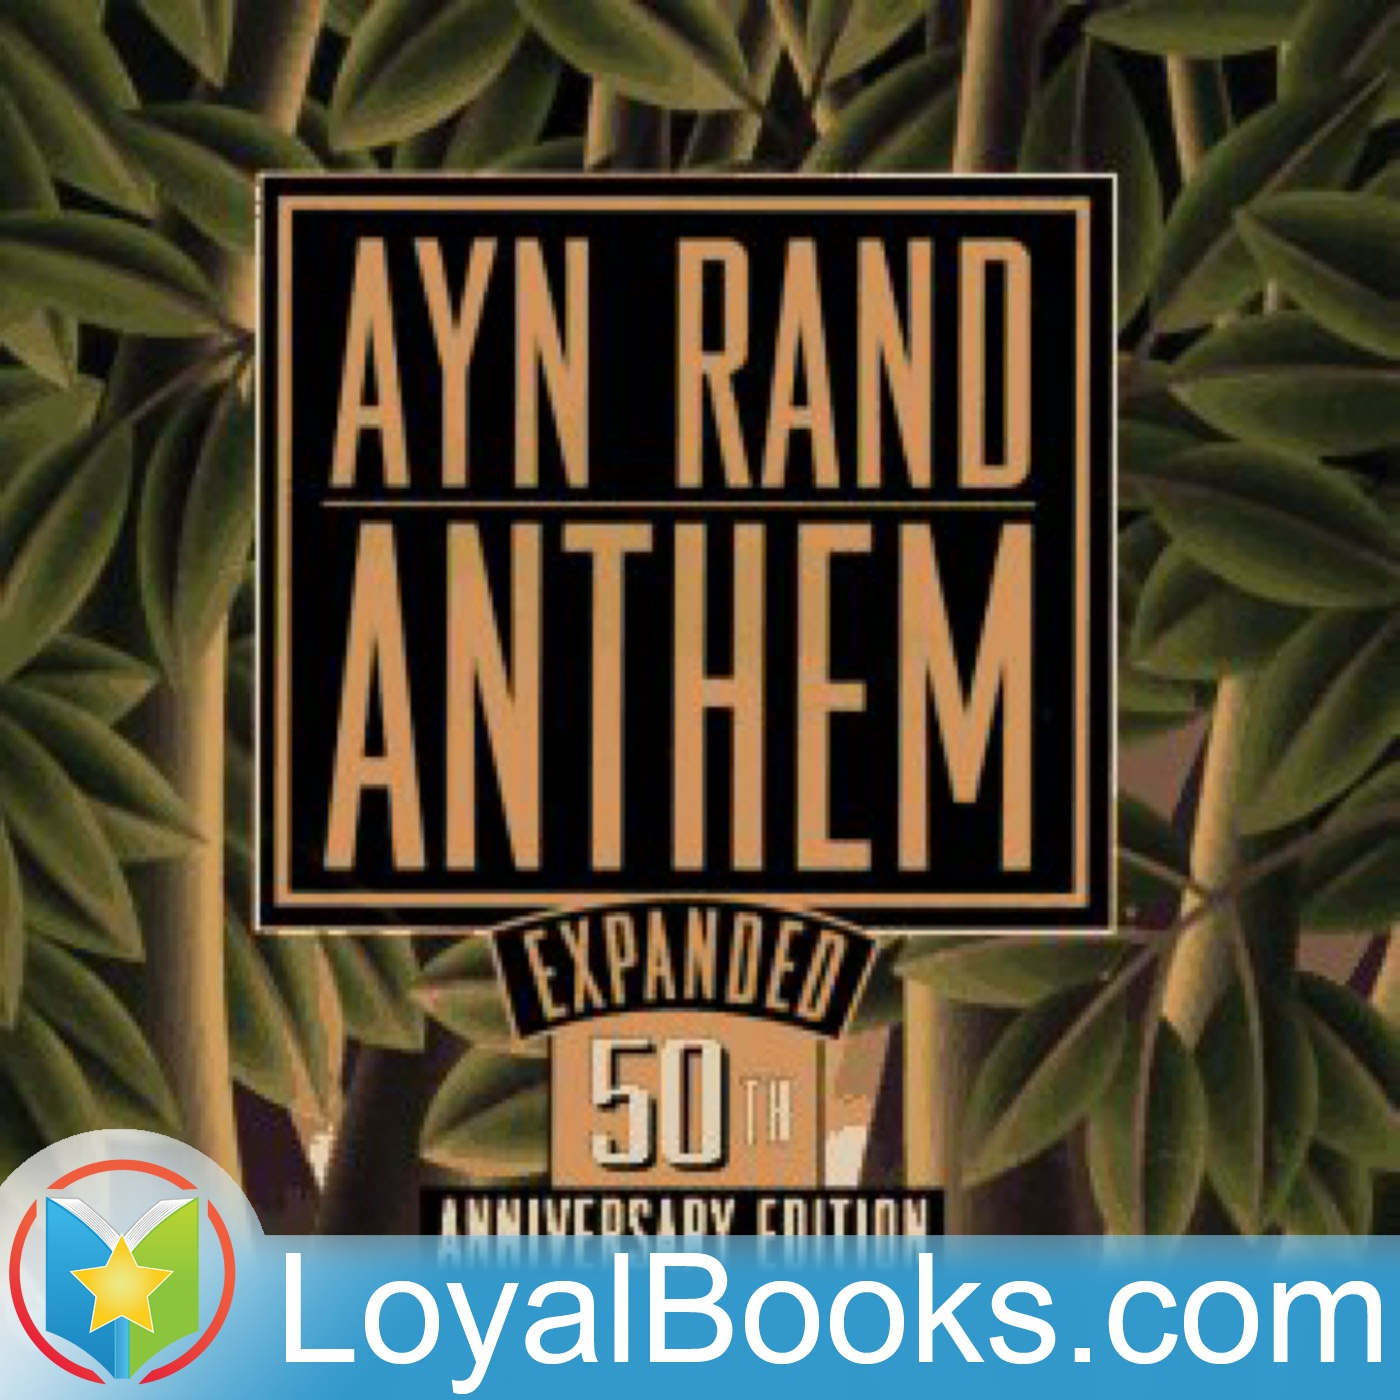 the anthem by ayn rand an Free essay: comparison essay: anthem, and invictus the poem invictus by william e henley, and the novel anthem by ayn rand, both have common themes that.